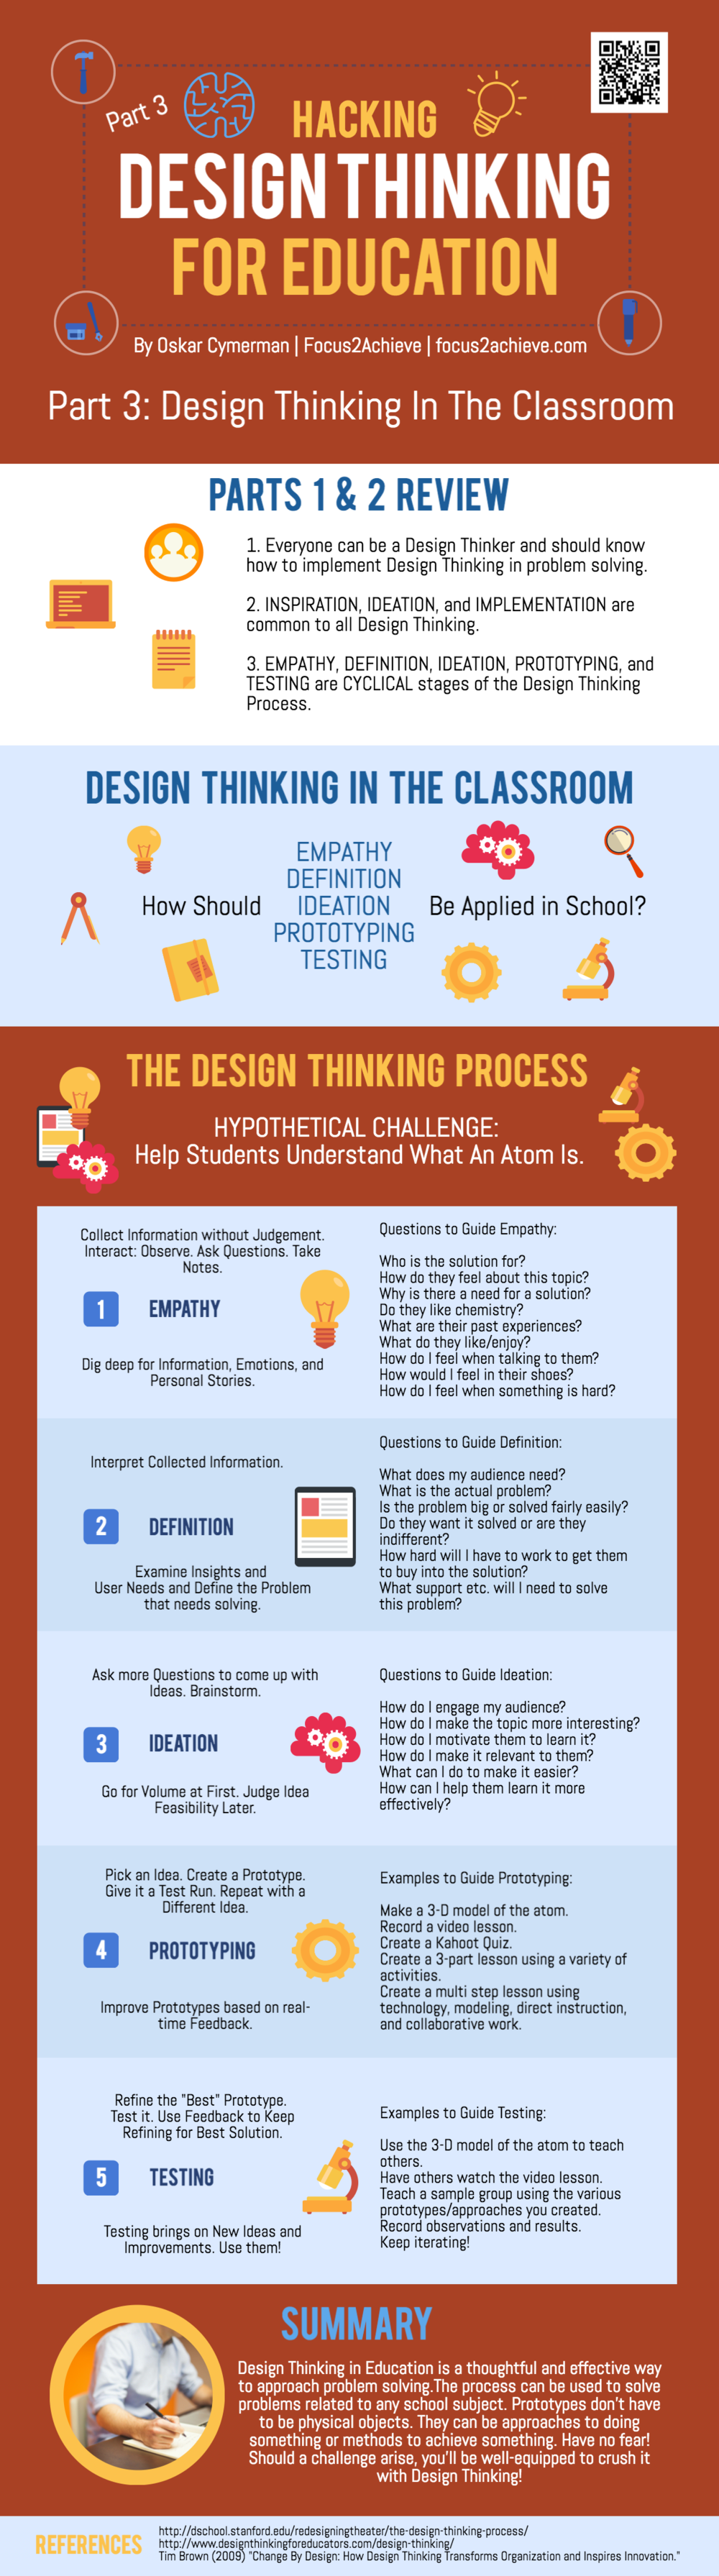 Design Thinking Application In The Classroom